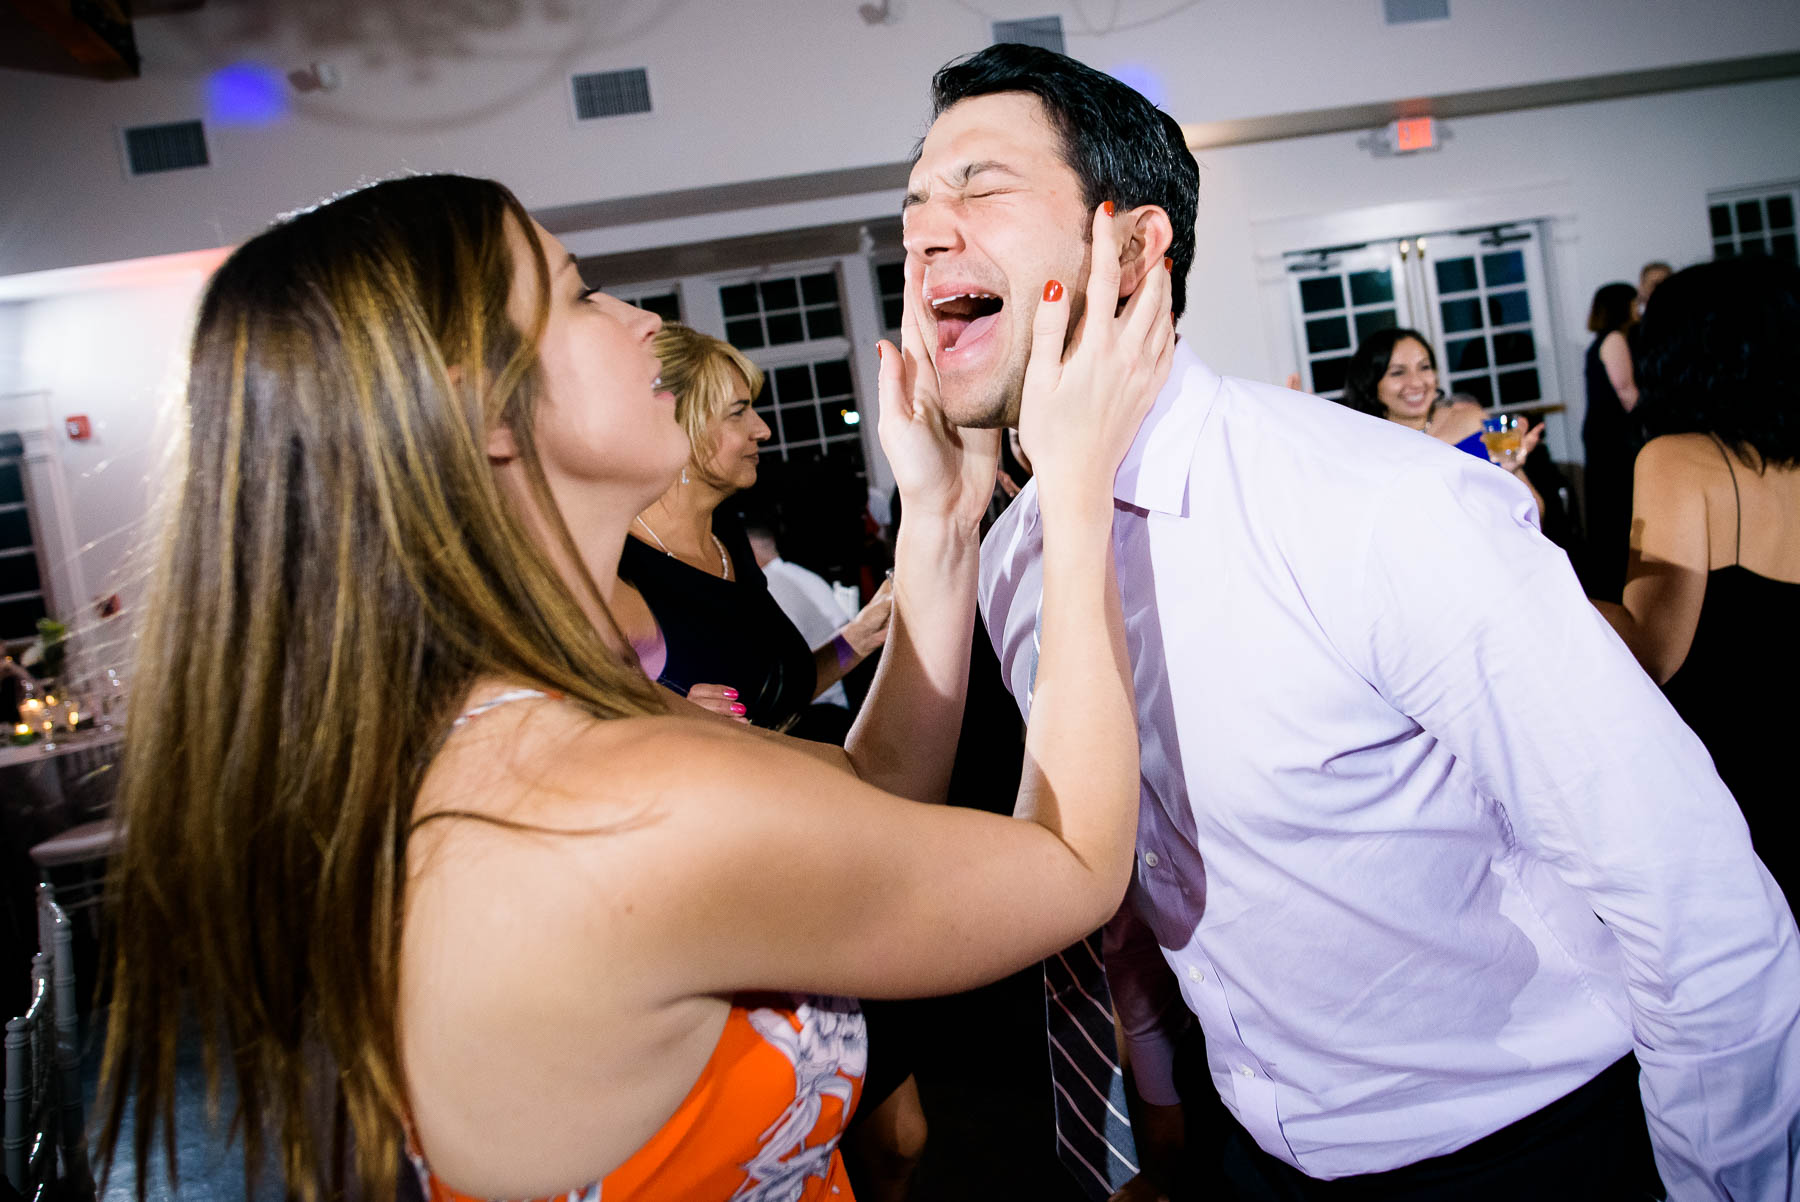 Funny dance floor moments during a wedding at the Manor House in Littleton, Colorado.